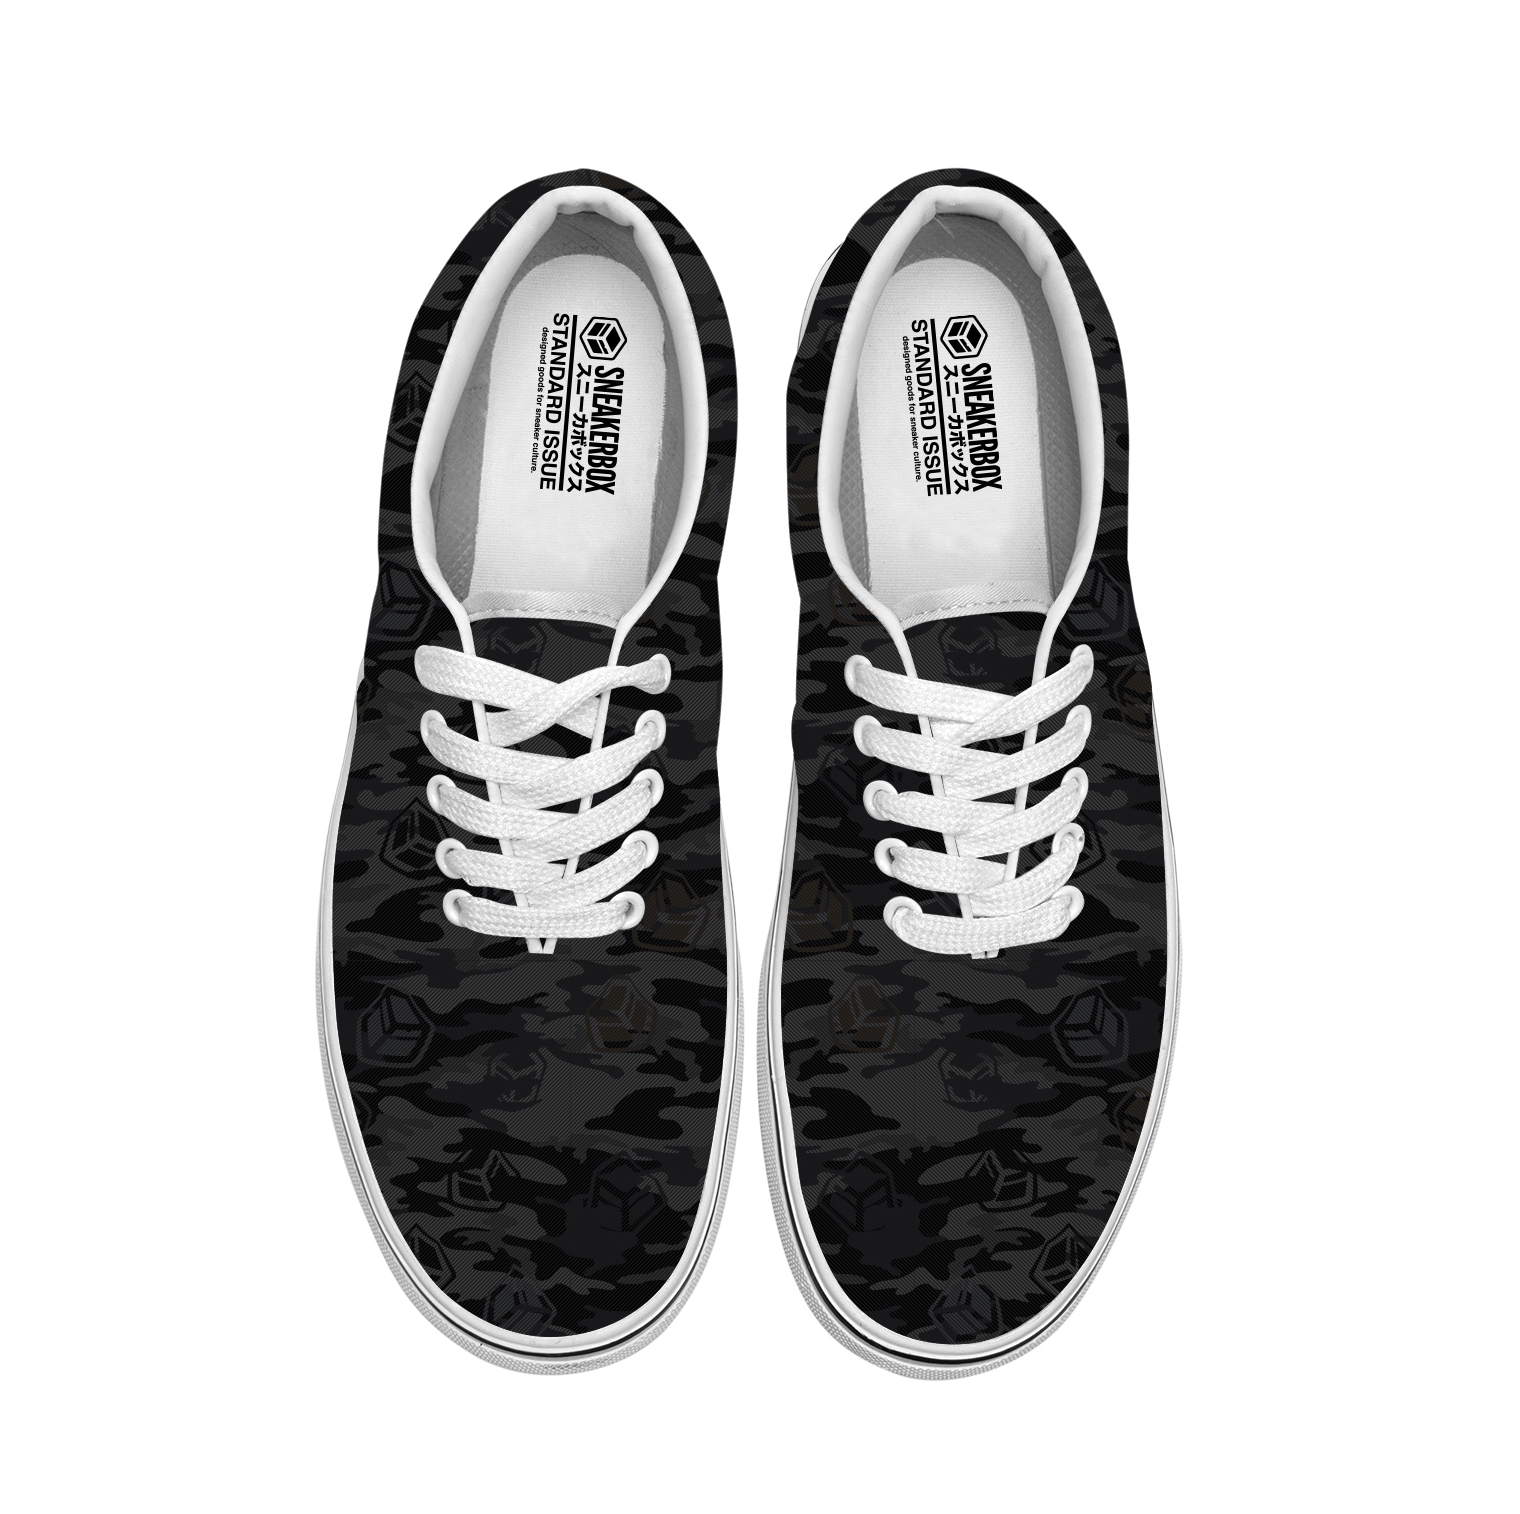 Sneakerbox_Black_Camo_Casual_Sneaker_02